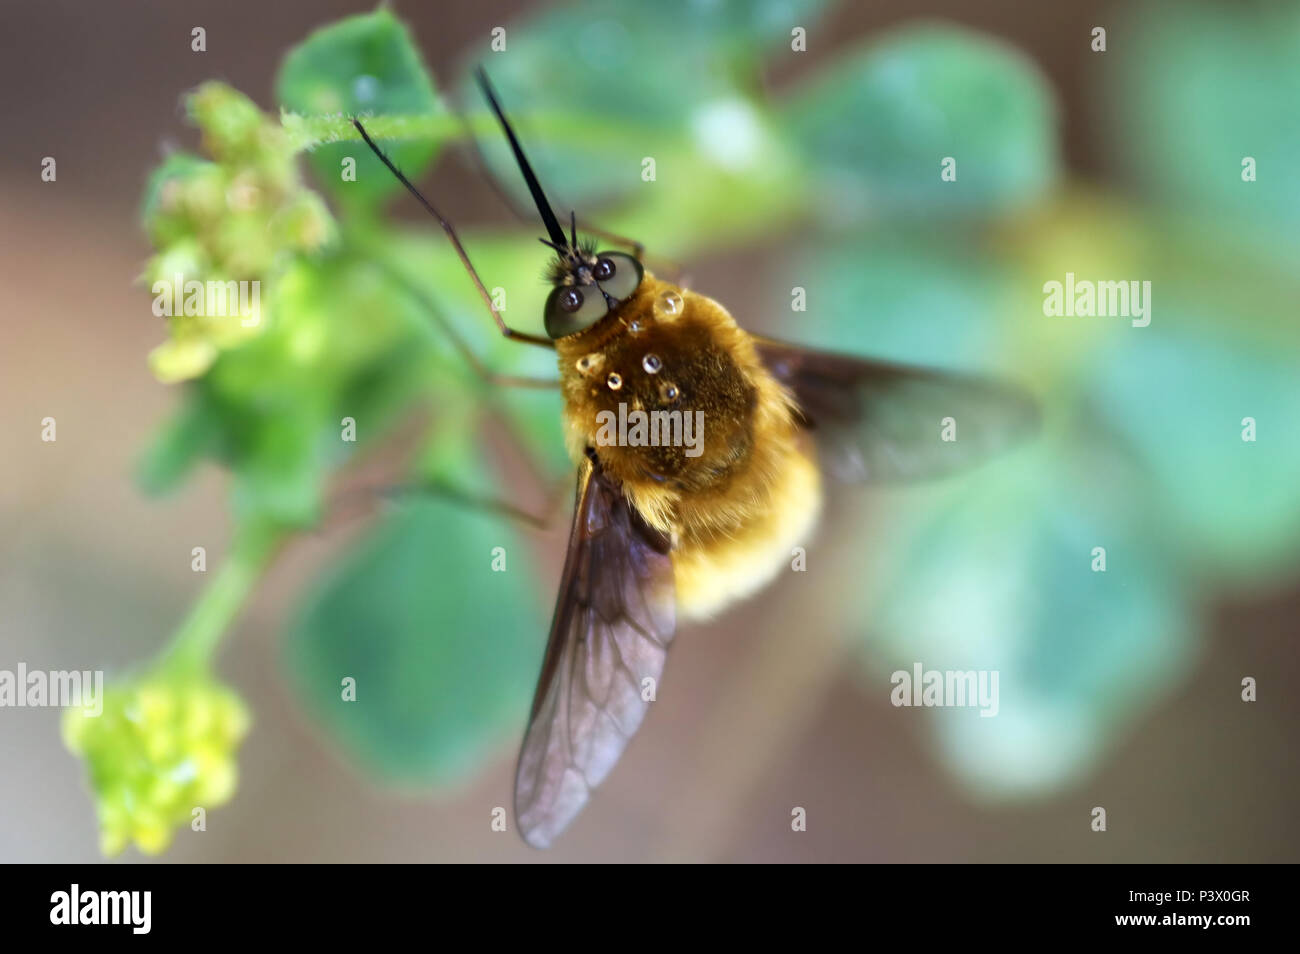 Bee fly or humbleflie (Bombylius major) resting on a leaf. Selective focus Stock Photo